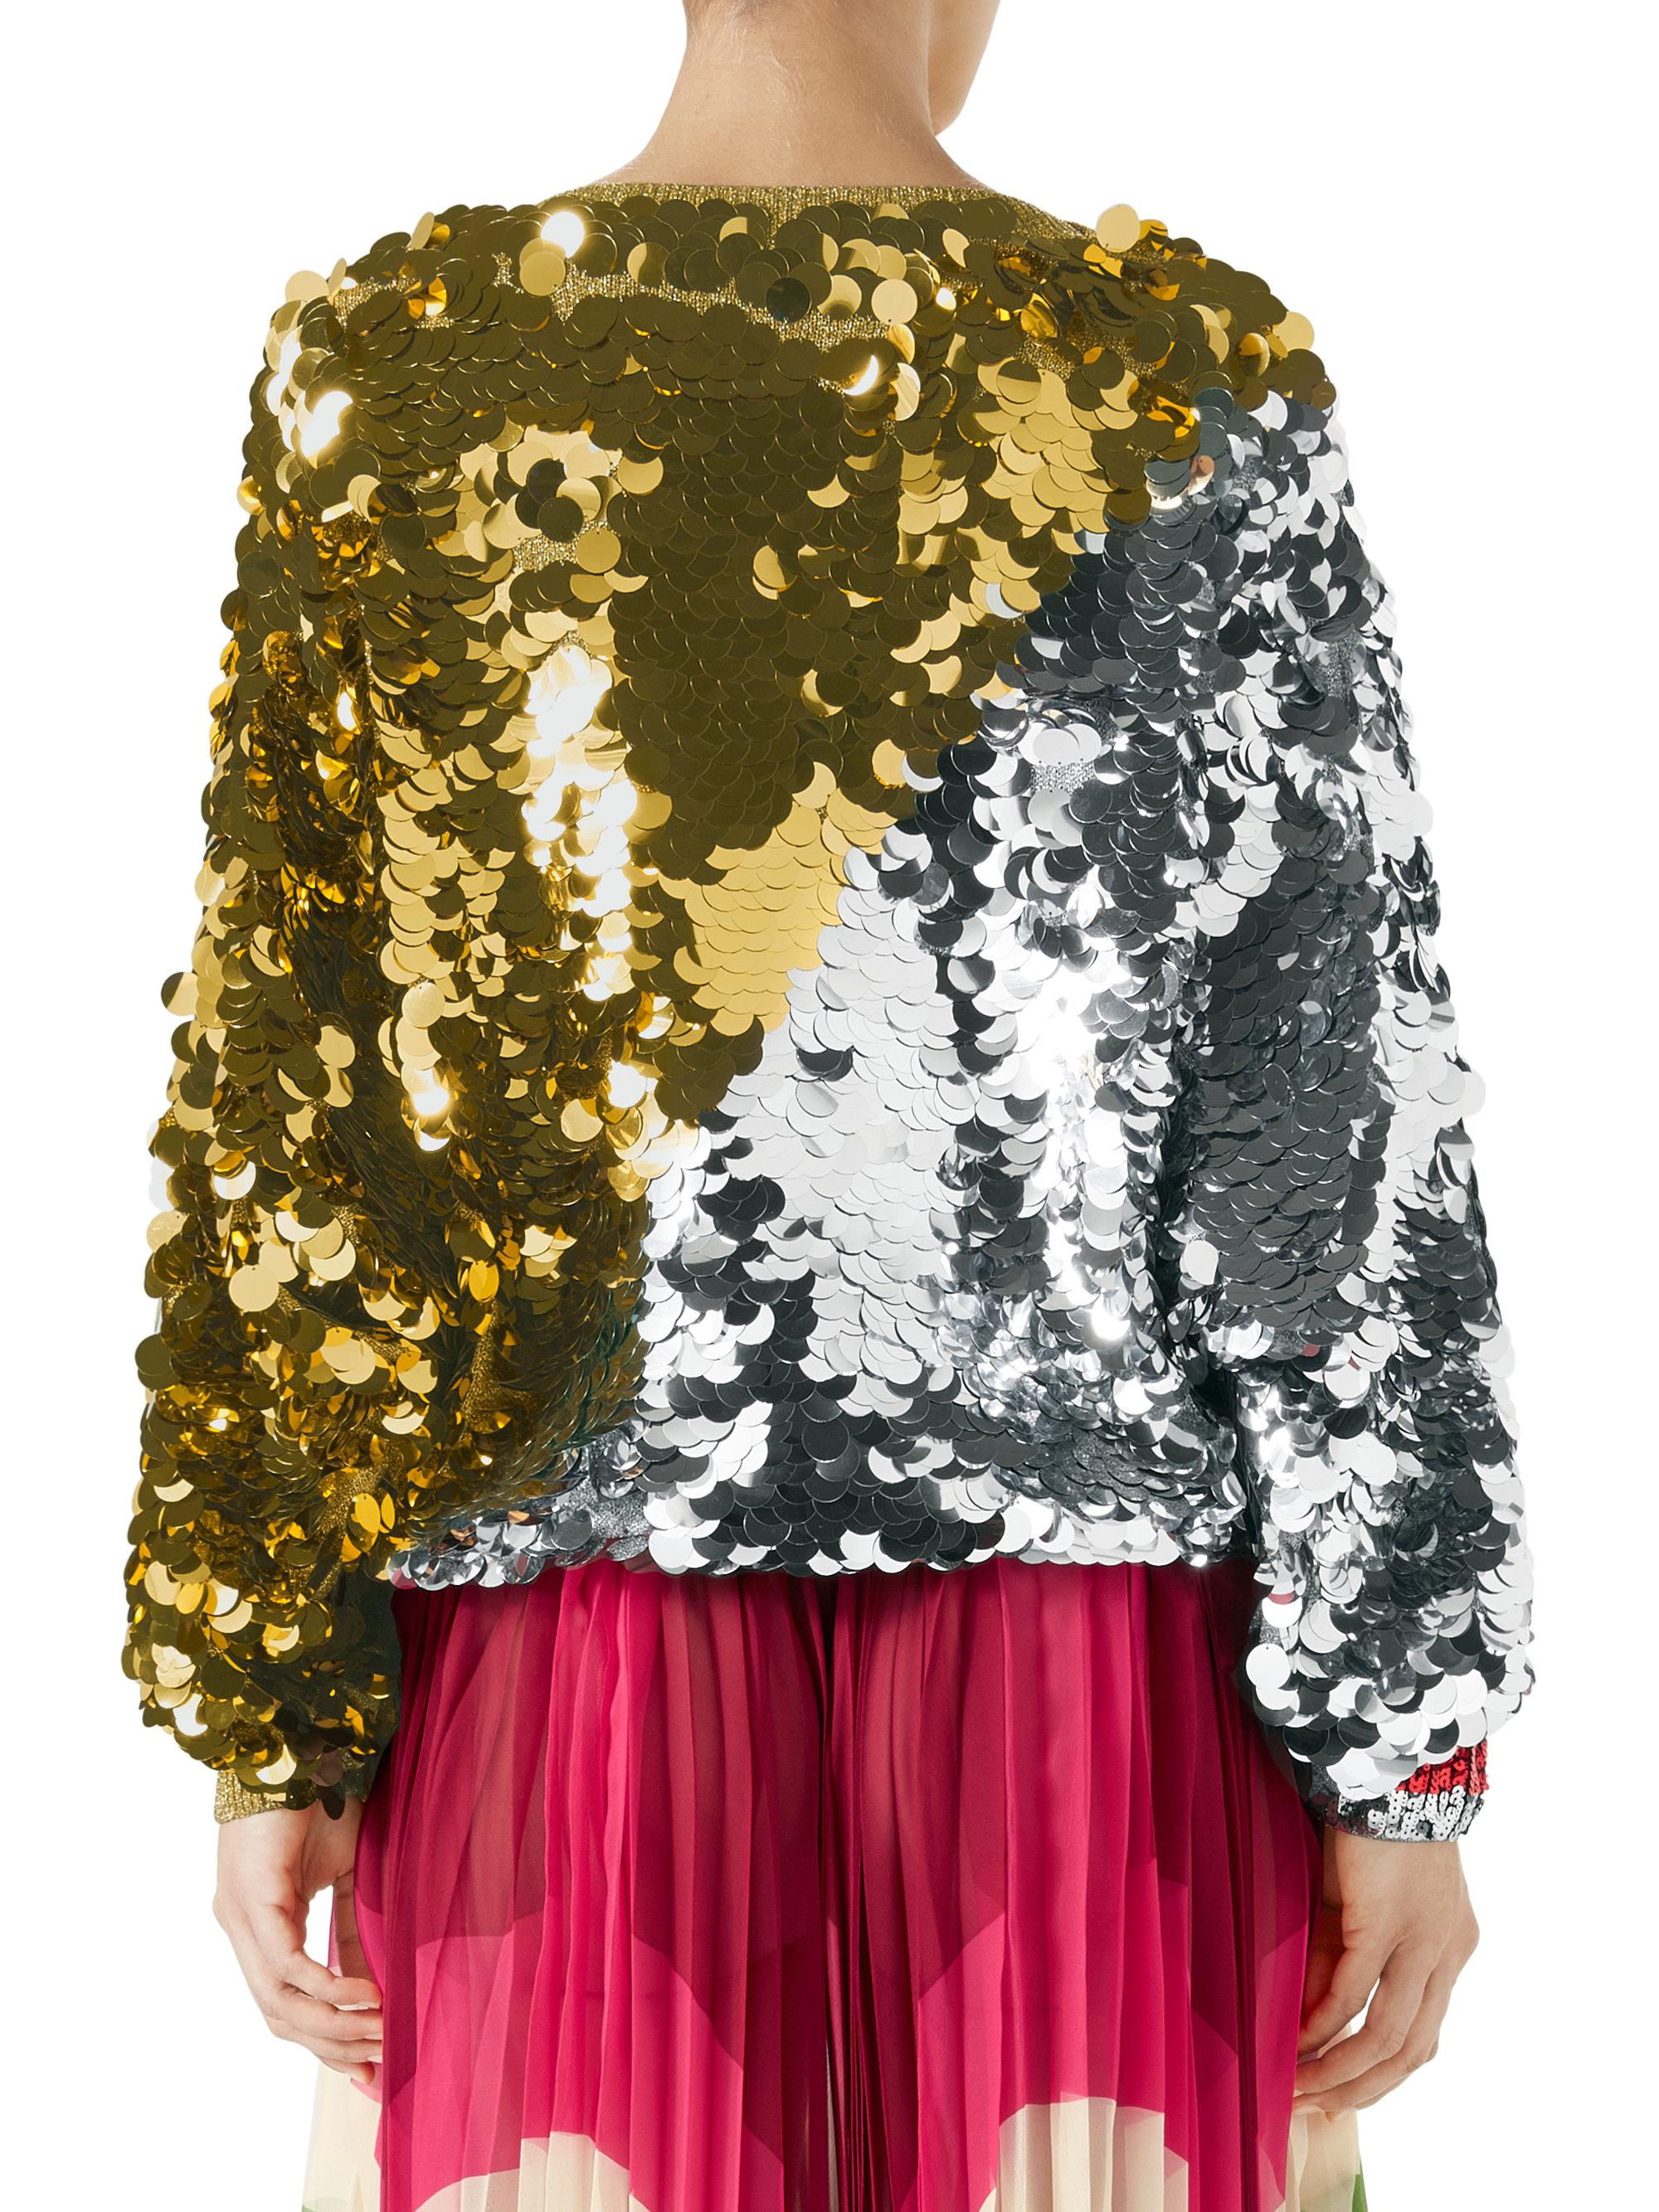 7c6124749b10 Lyst - Gucci Gold And Silver Sequin Top in Metallic